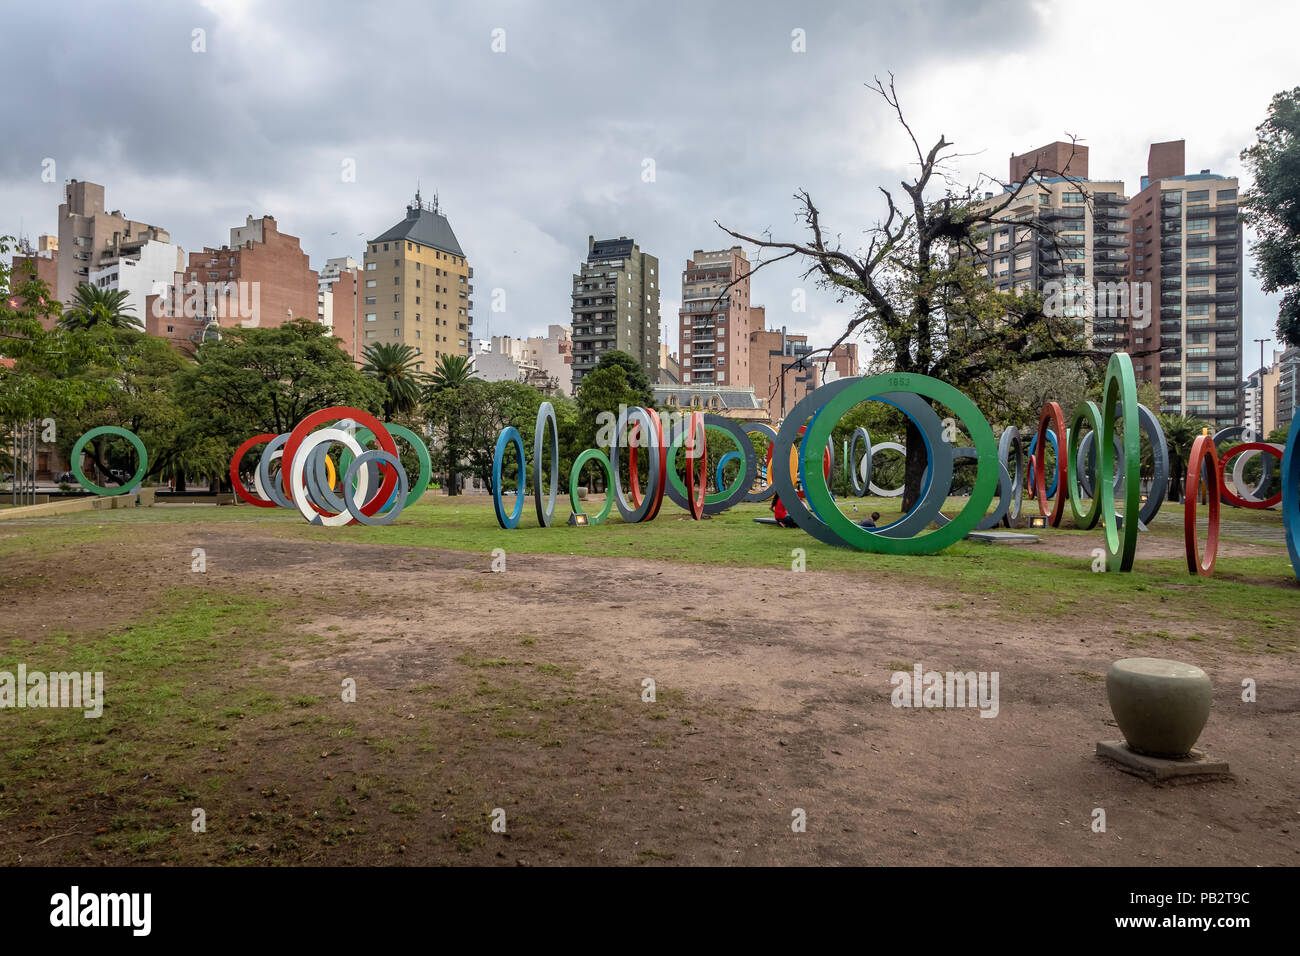 Bicentenary Square (Plaza del Bicententario) with rings telling the history of Argentina - Cordoba, Argentina Stock Photo